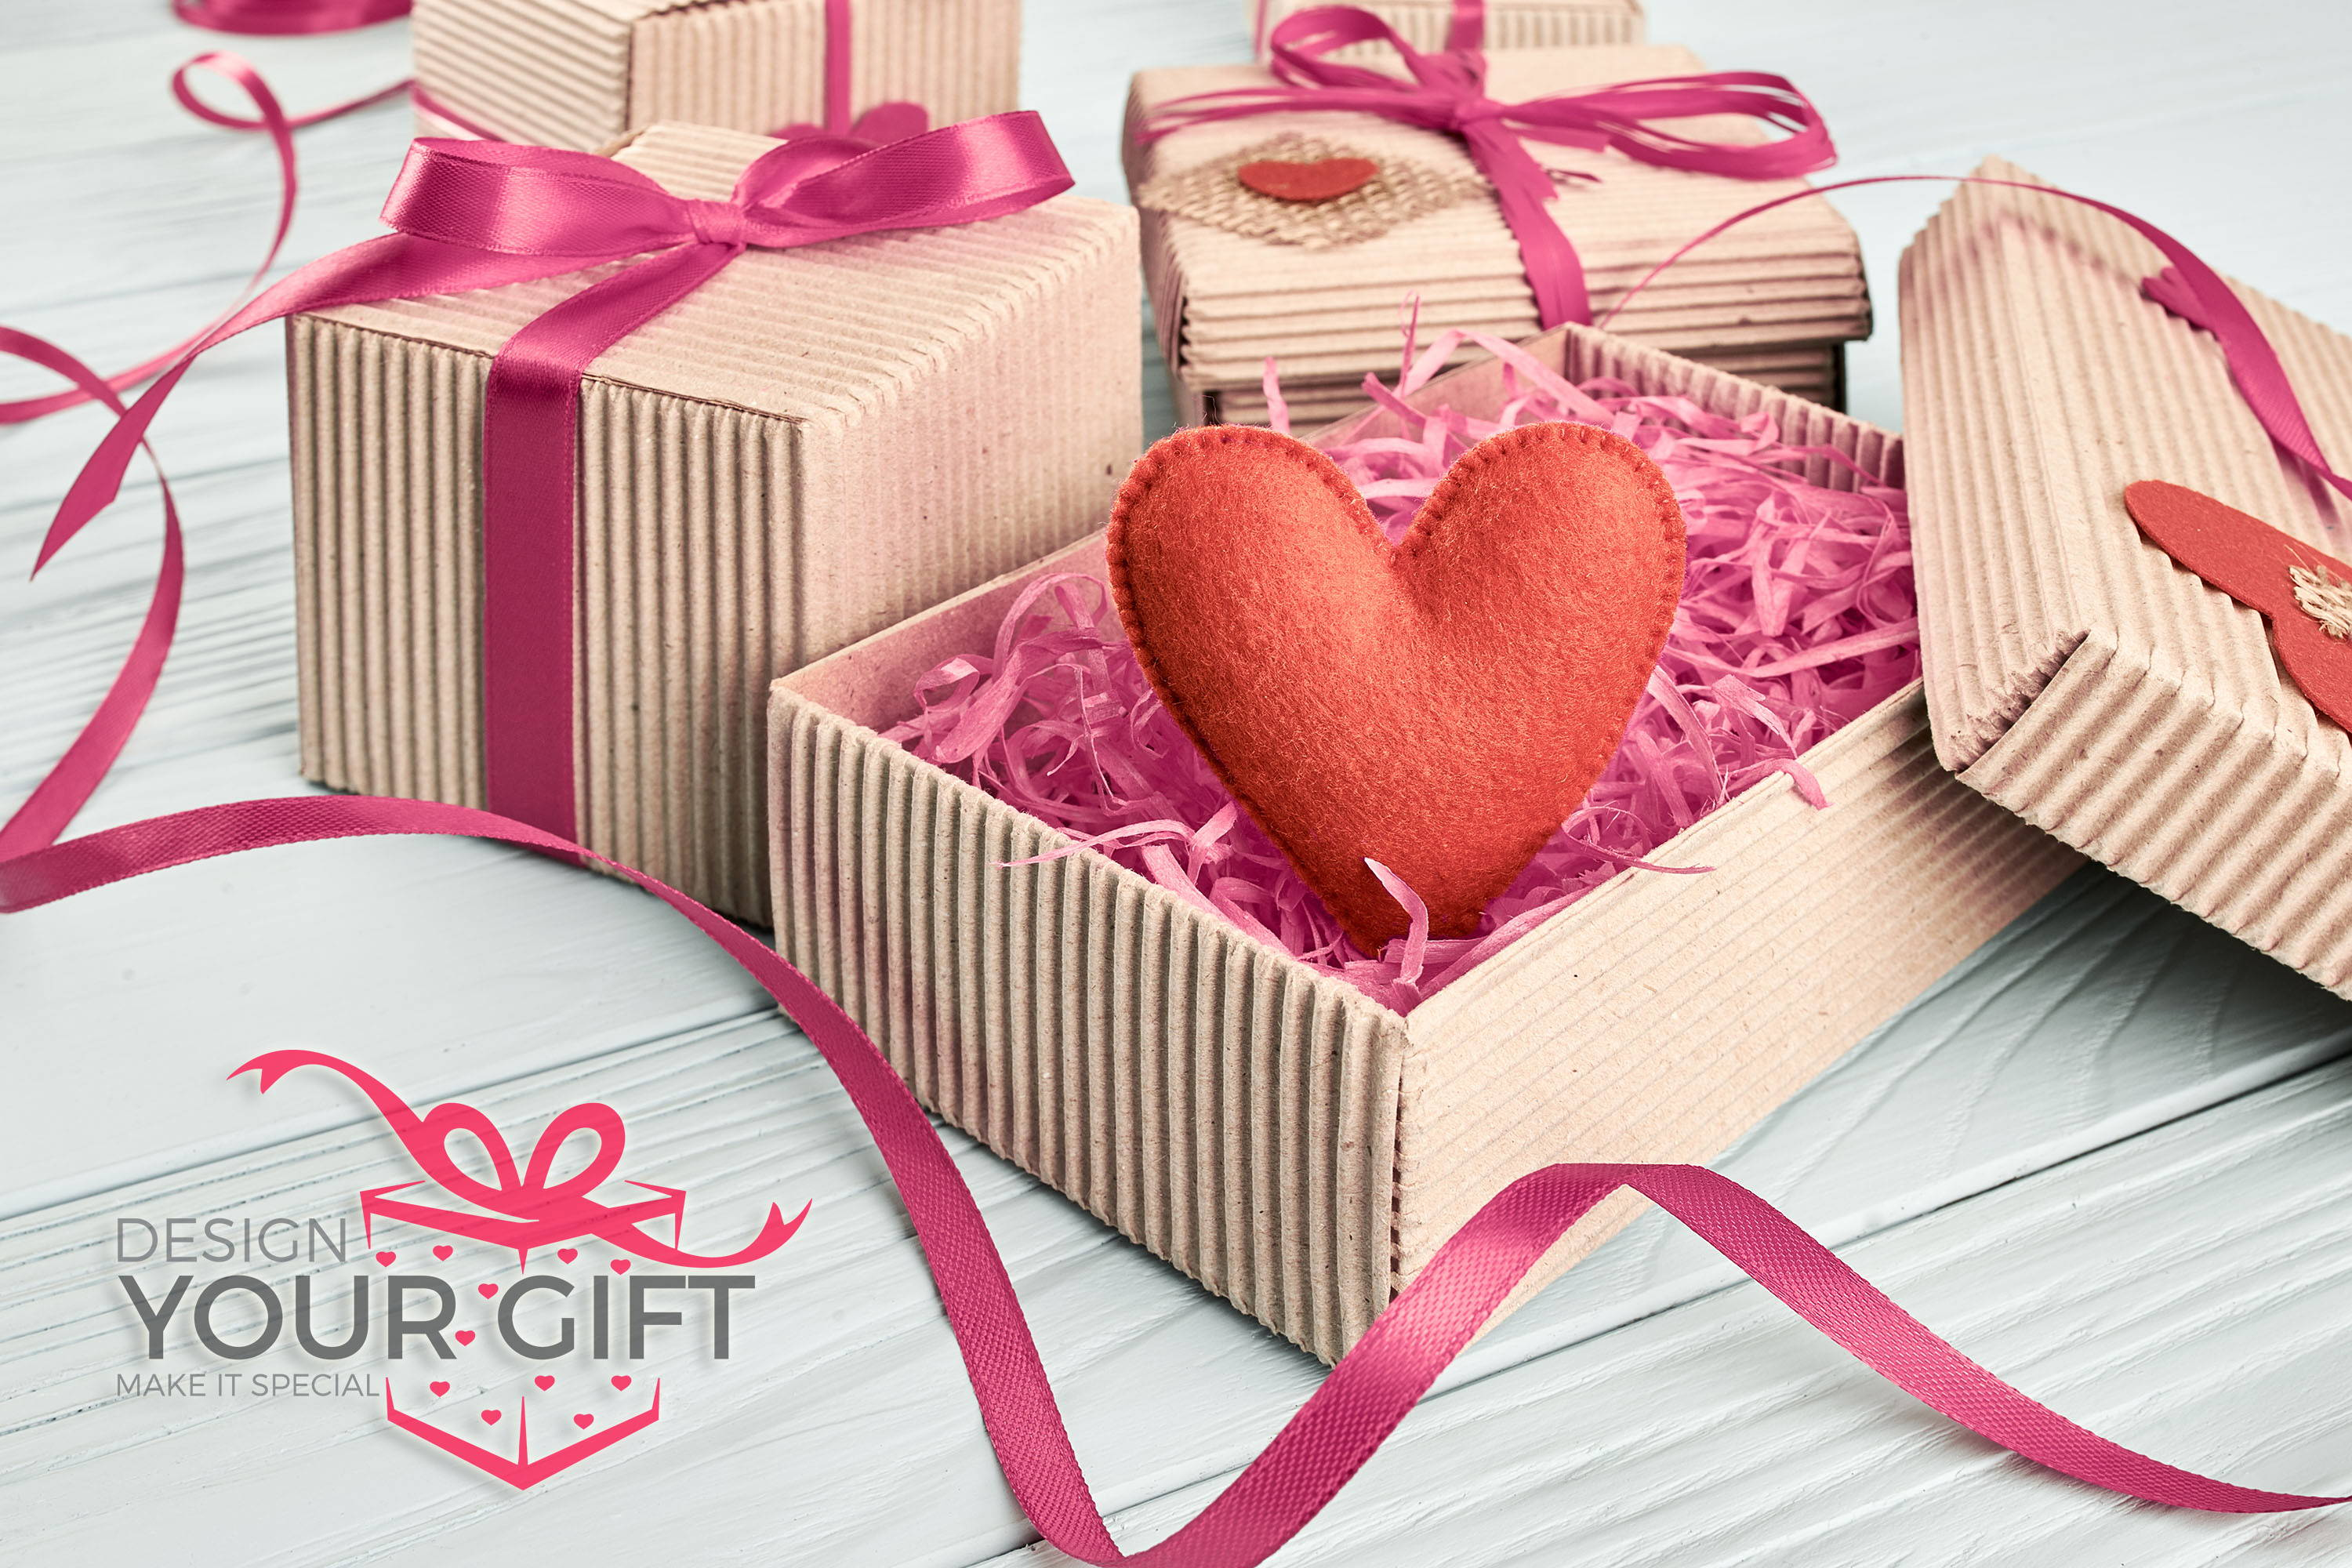 gift boxes with heart and design your gift uk logo